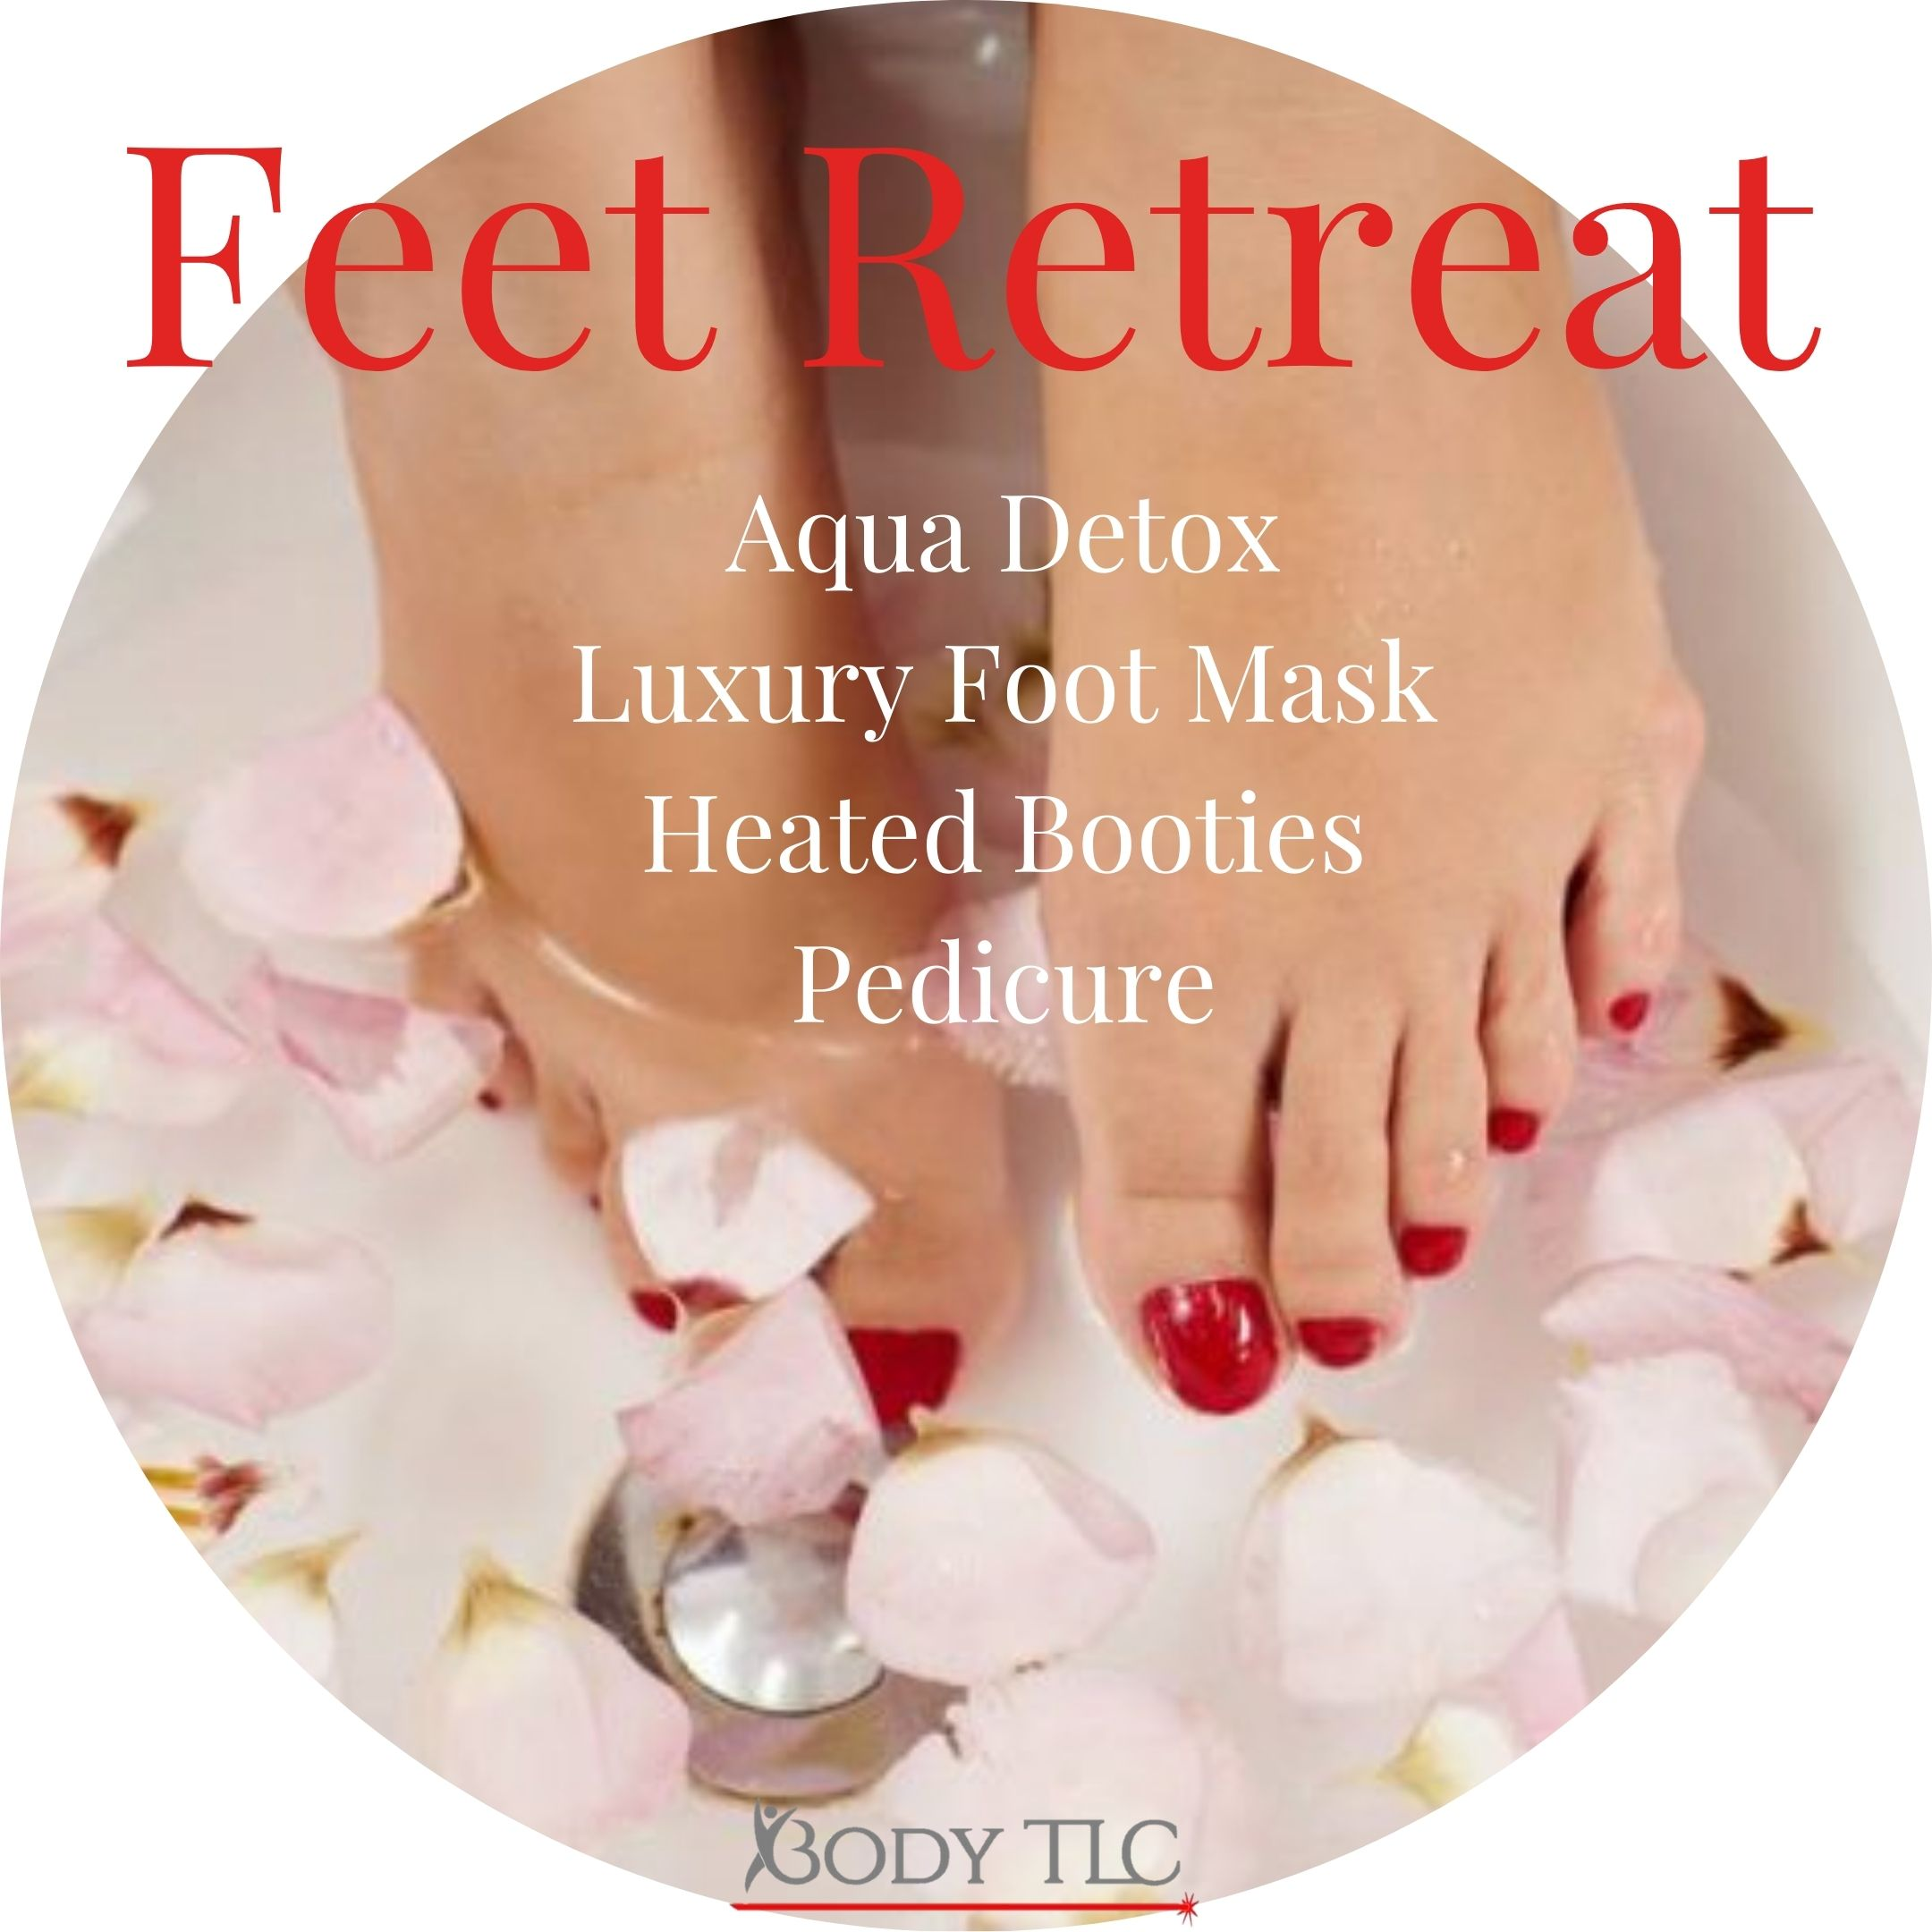 Feet Retreat